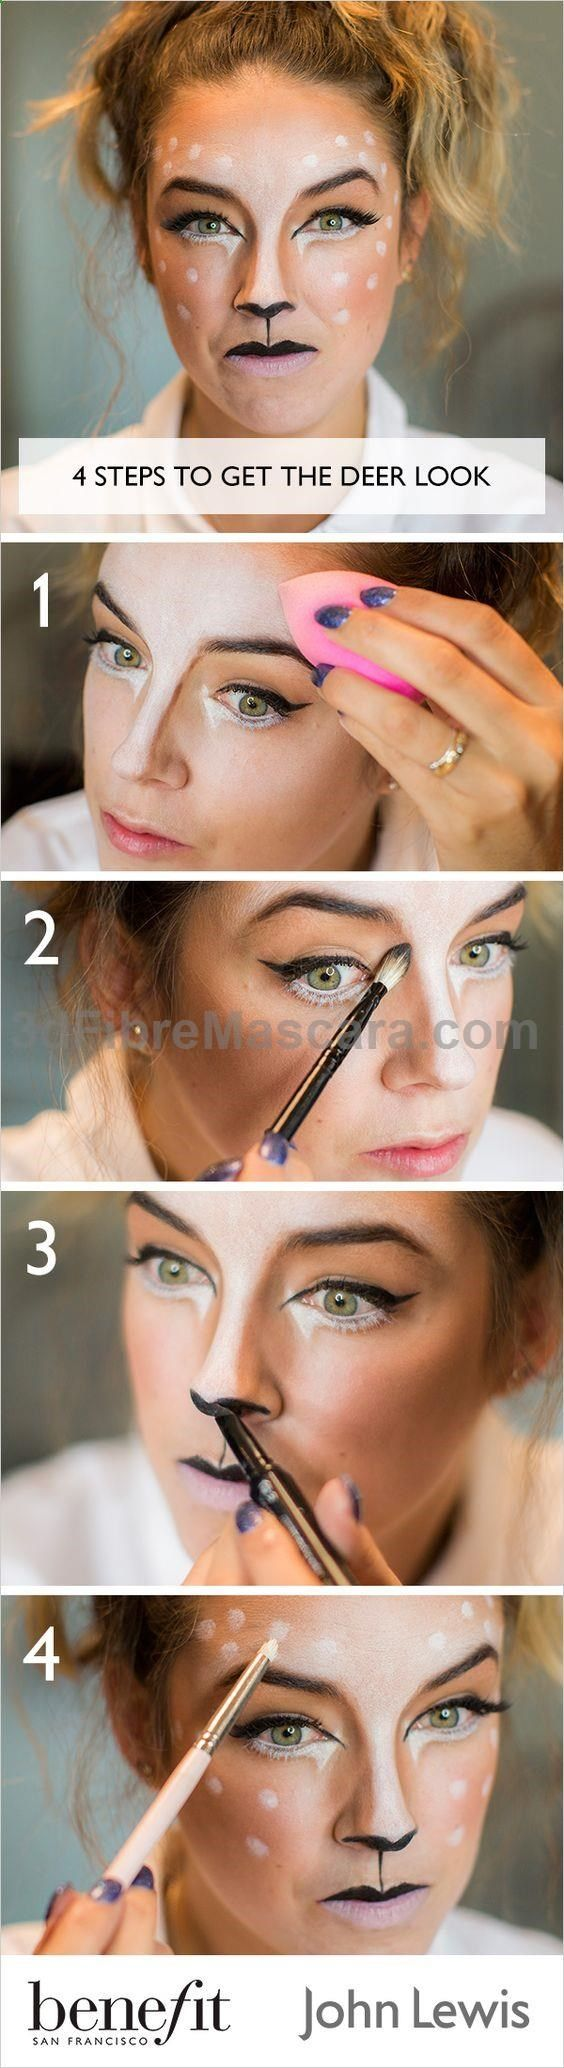 Lisa Potter-Dixon Head Make Up Artist for Benefit Cosmetics, shows us how to recreate a cute deer look this Halloween. Discover full instructions and product details.